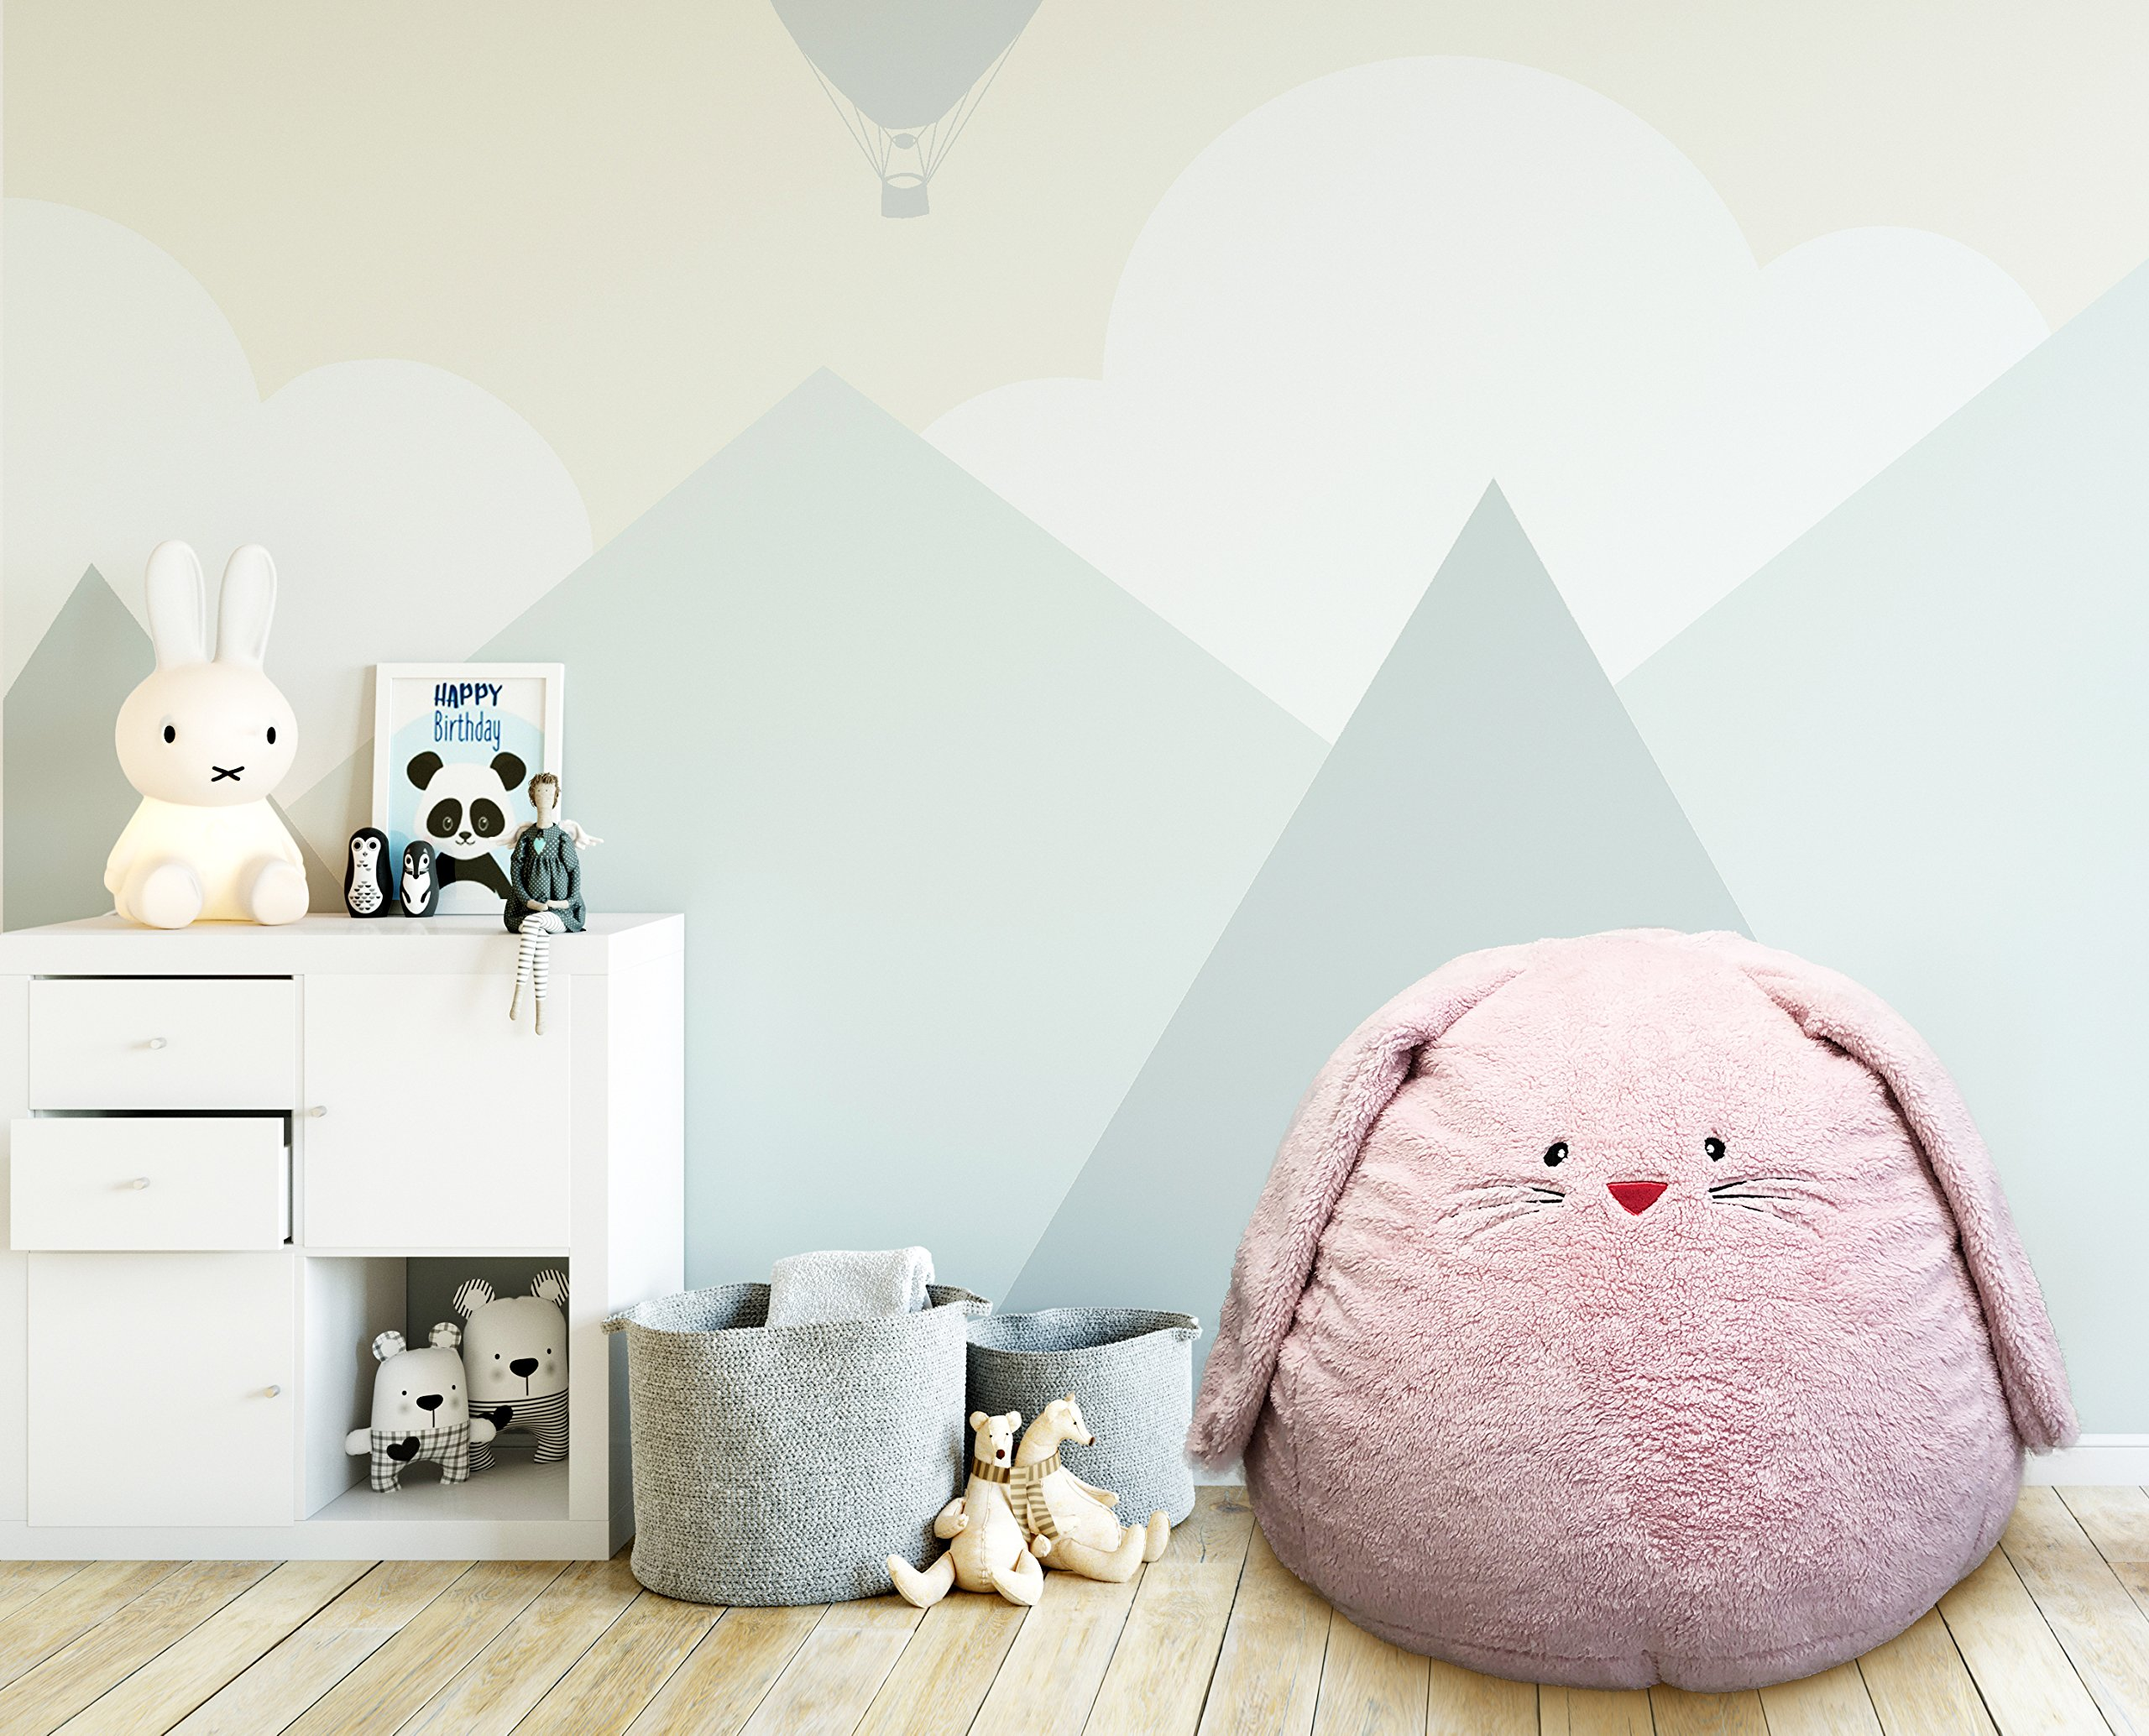 Beanbag For Kids: Soft And Comfortable Stuffed Bean Bag Chair For The Nursery, Cute Animal Design For Boys And Girls, Lux Plush Fabric, For Children Of All Ages 30'' x 30'' x 20'' (Sherpa Bunny)